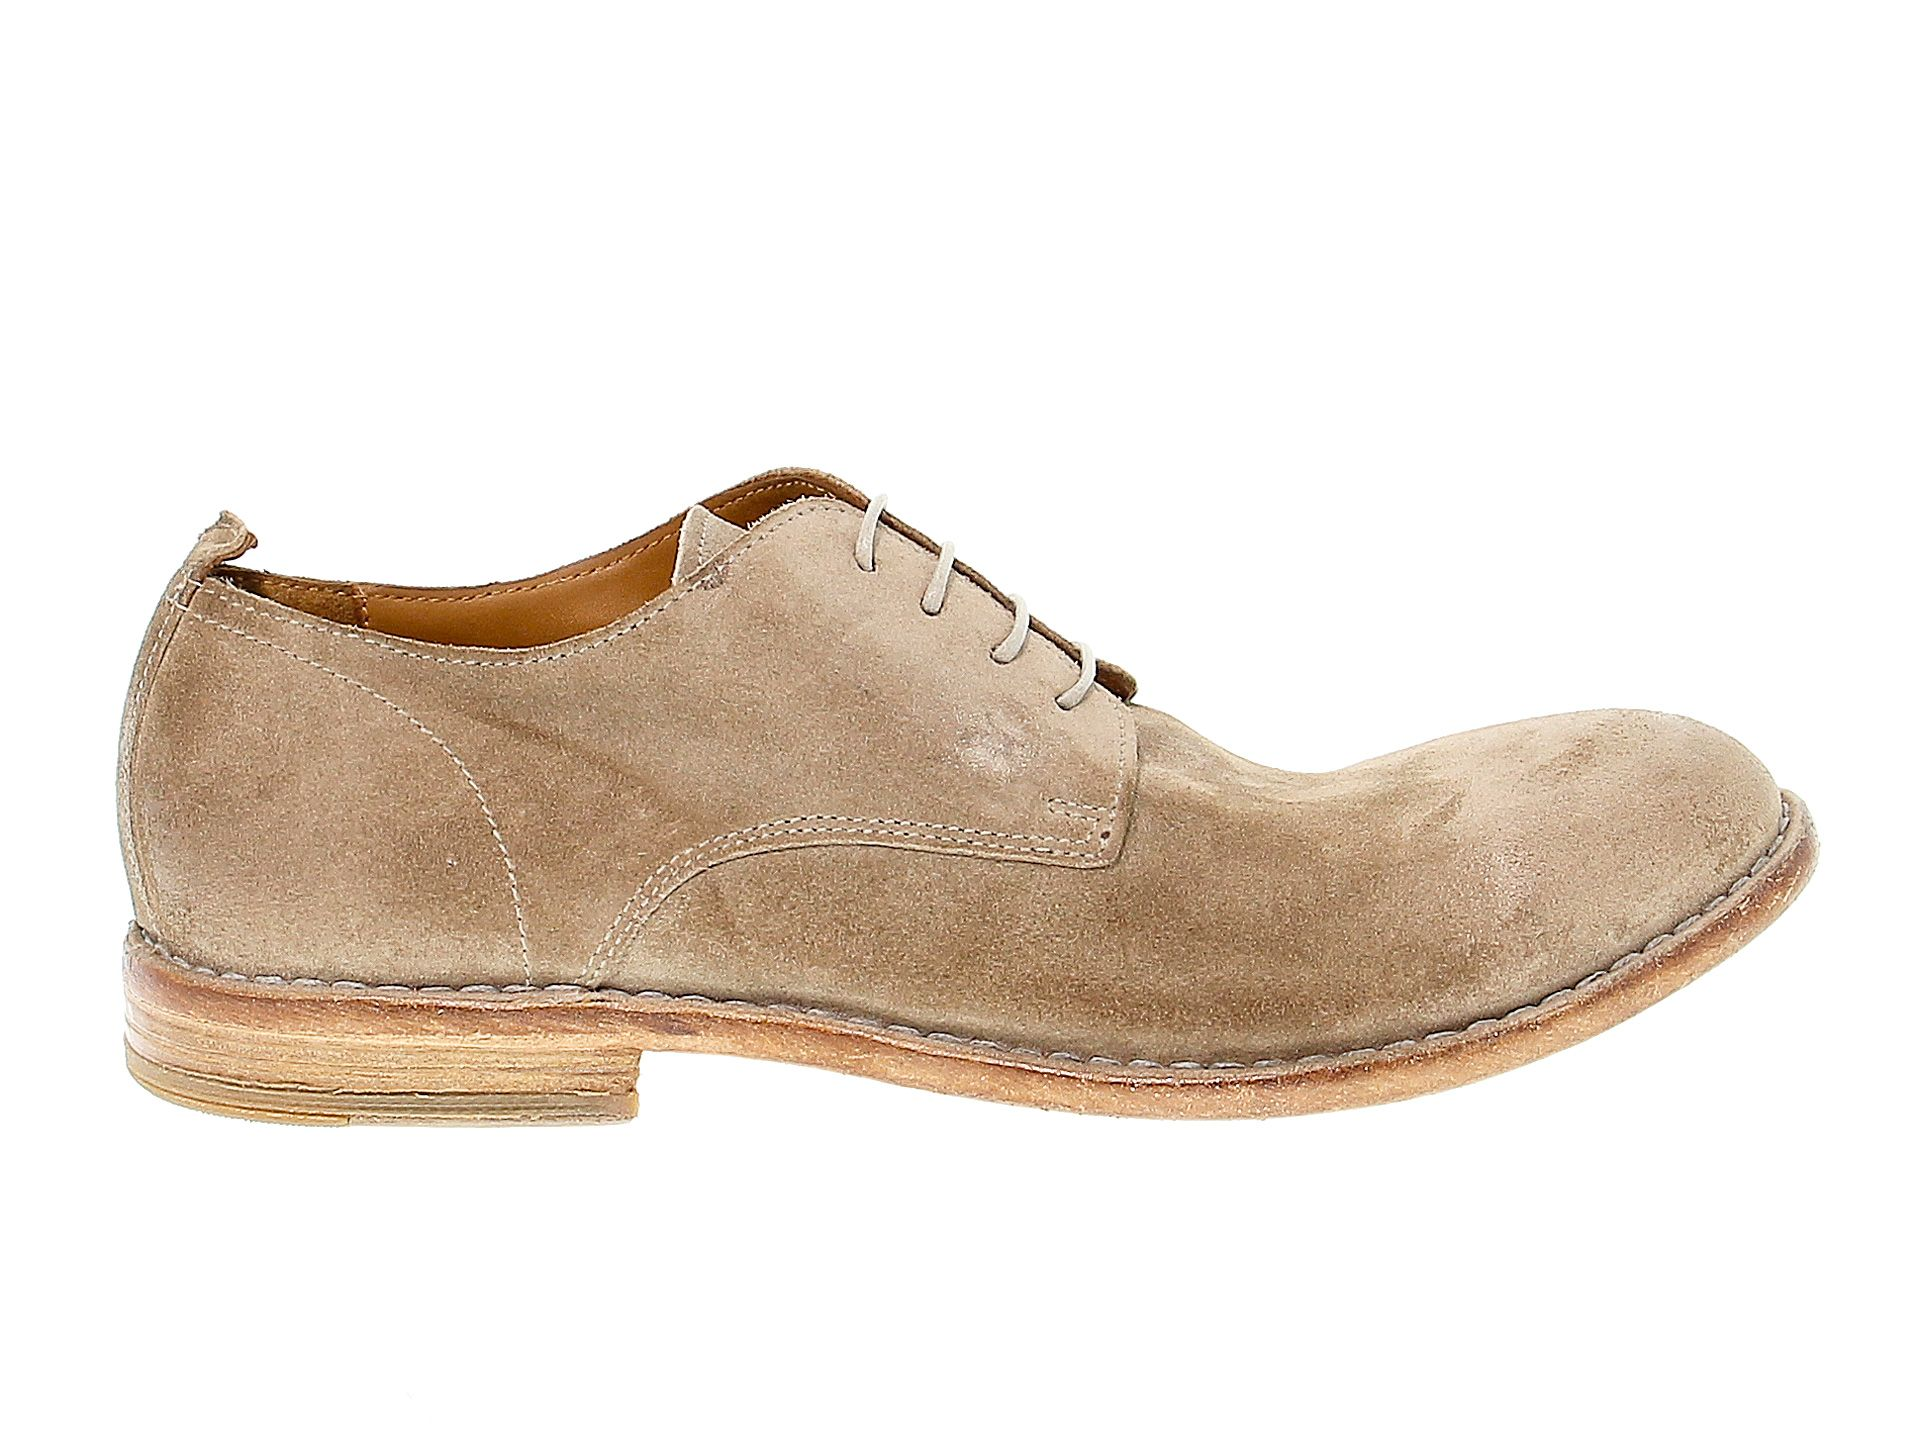 Moma Men's Brown Other Materials Lace-up Shoes